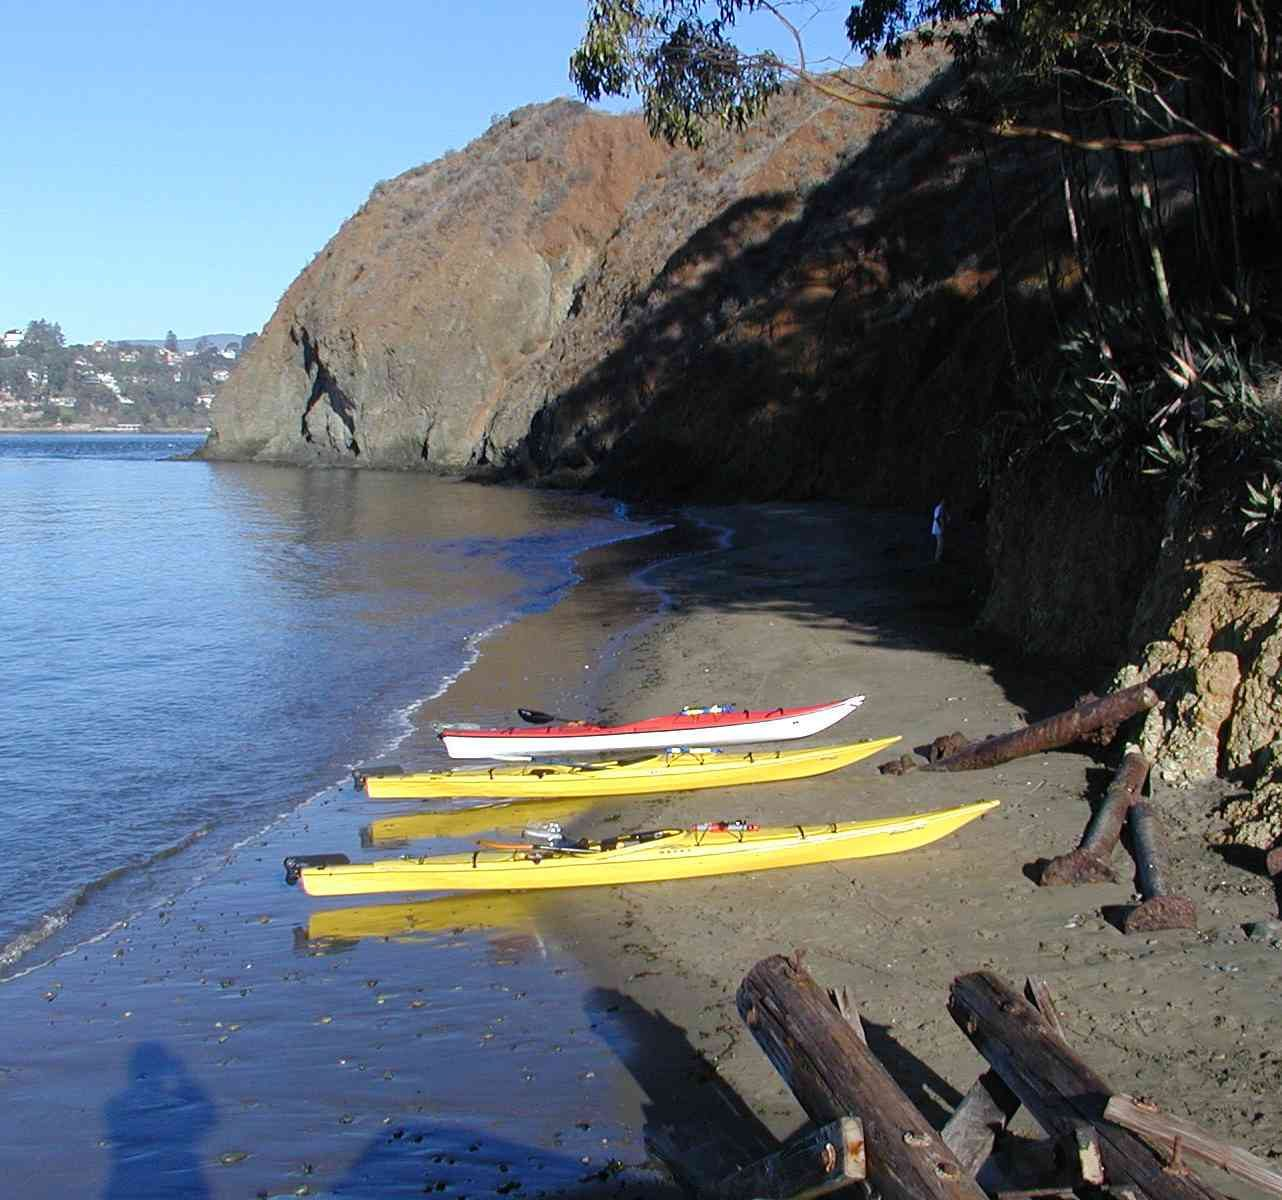 two yellow, one white and orange kayak pulled ashore on narrow beach with tall cliffs and rusty debris